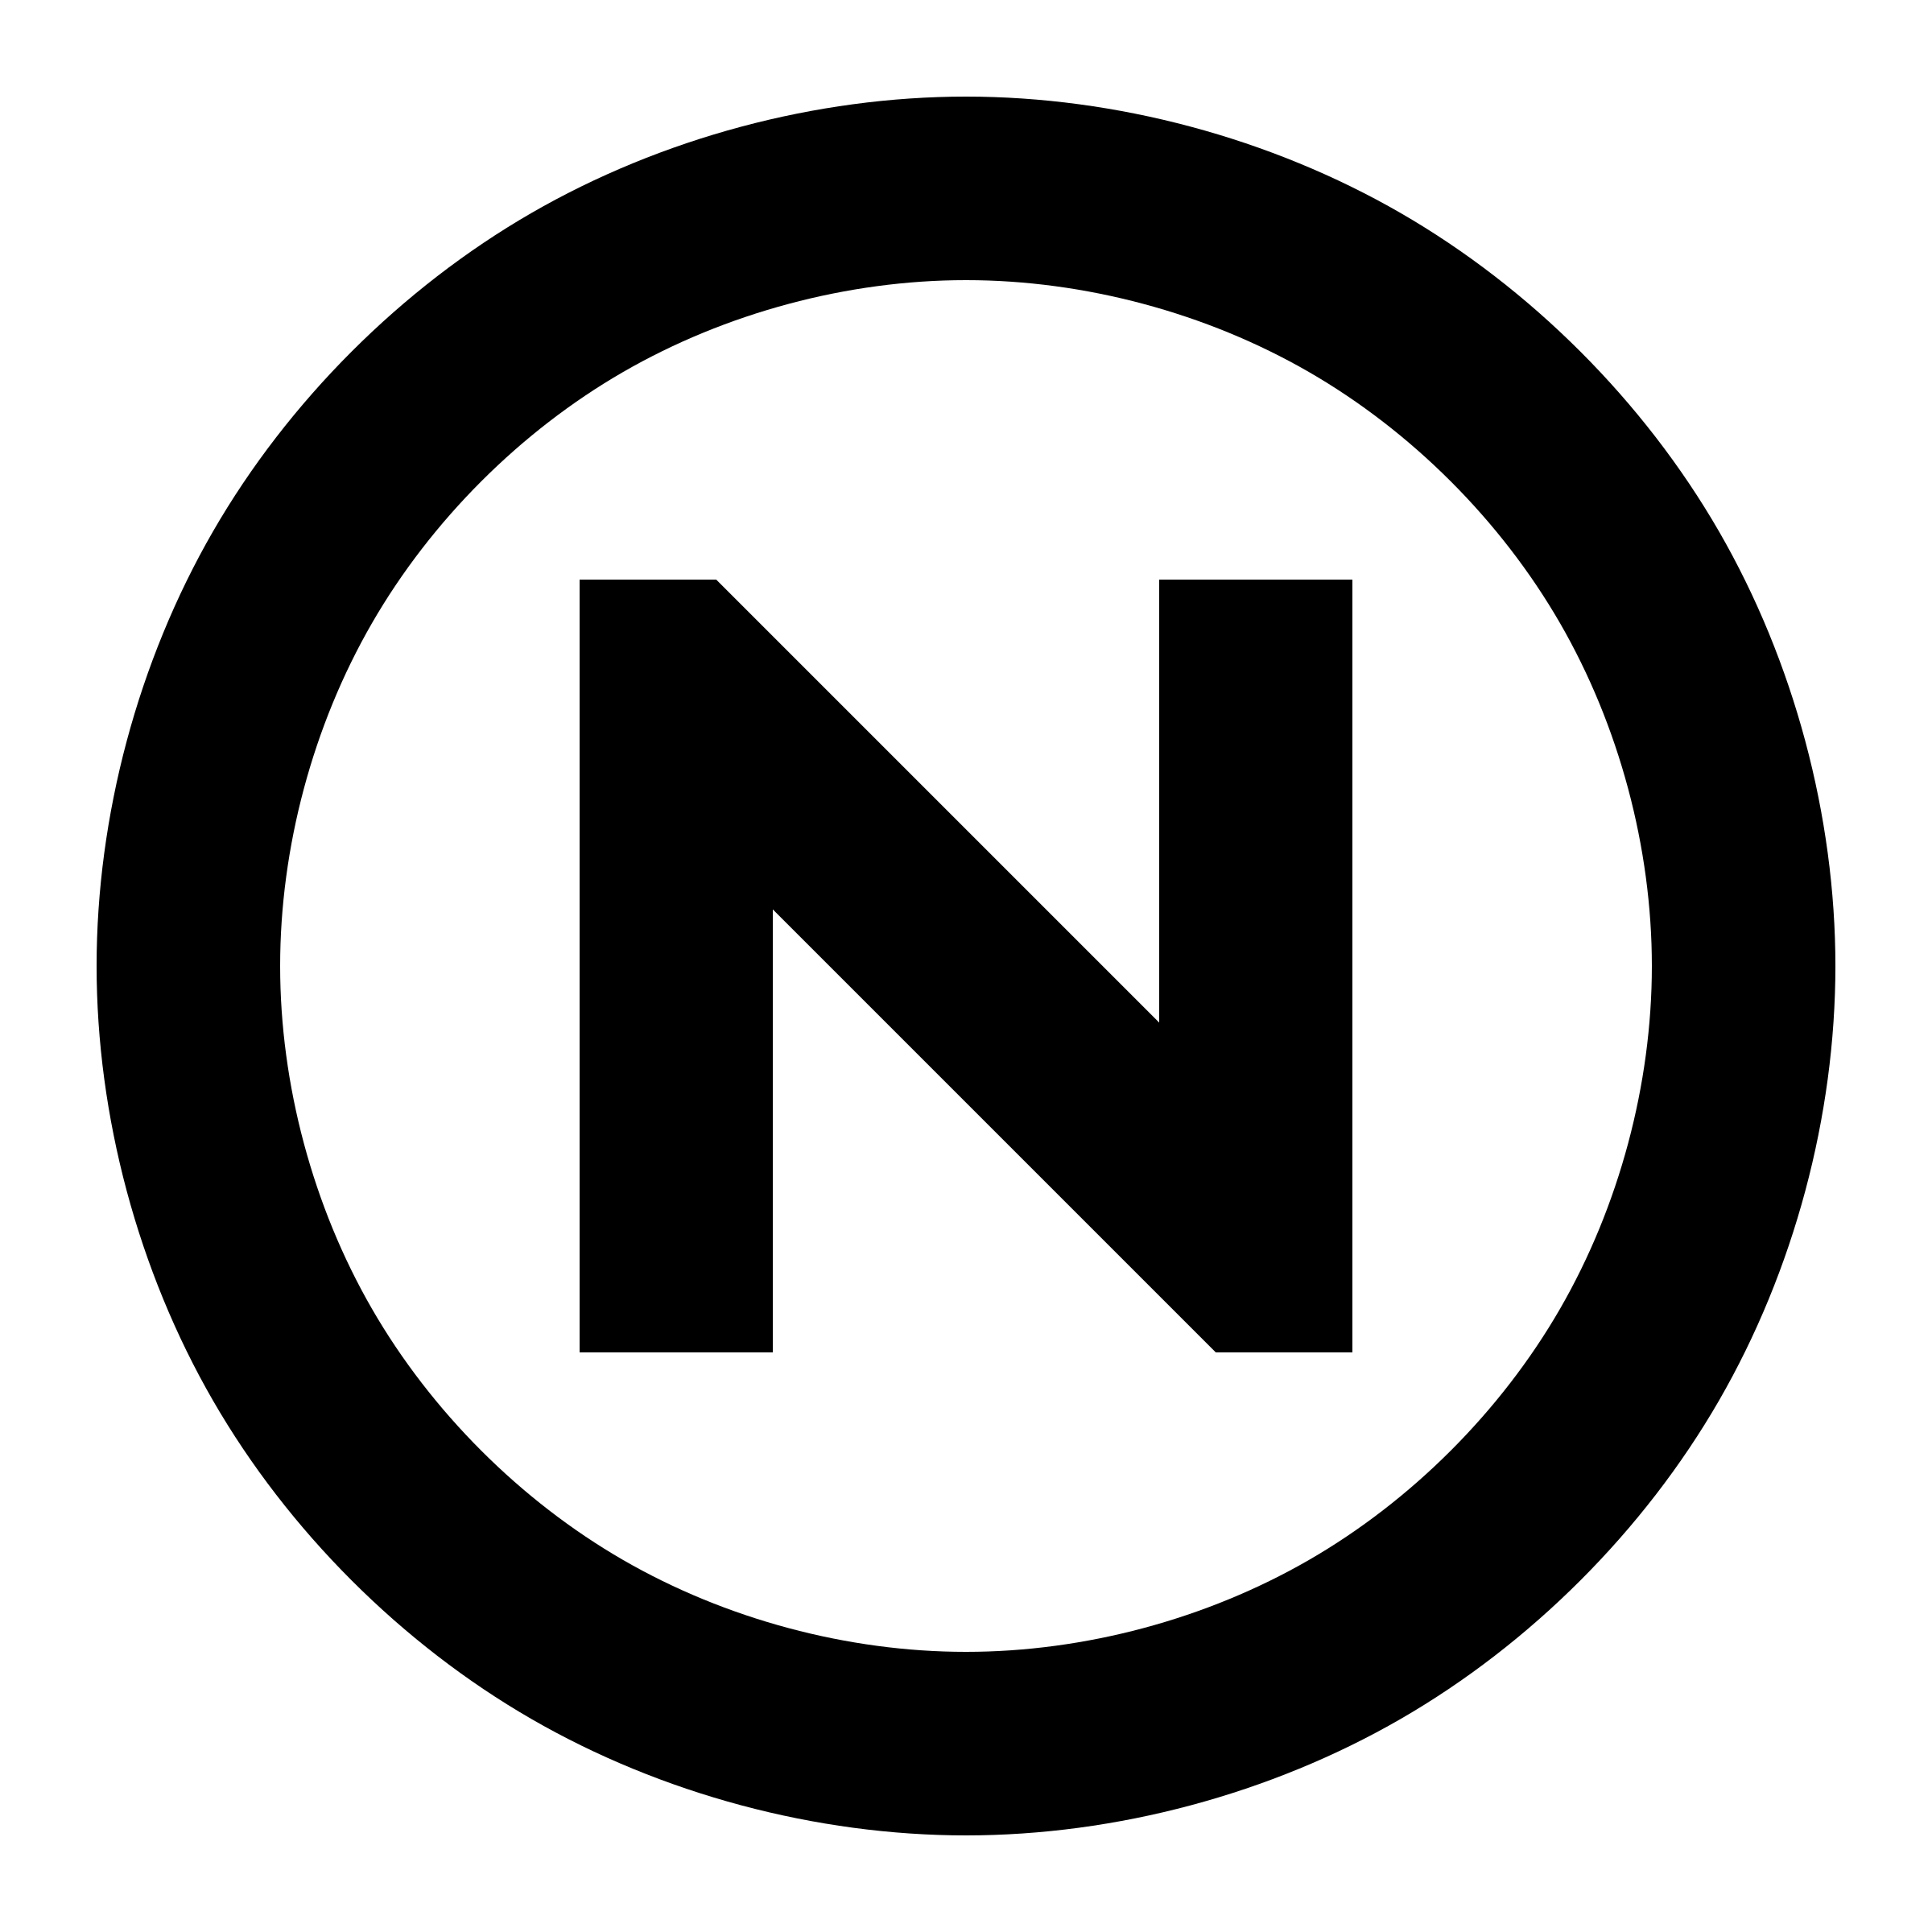 non-copyright restrictions symbol by Lazur URH